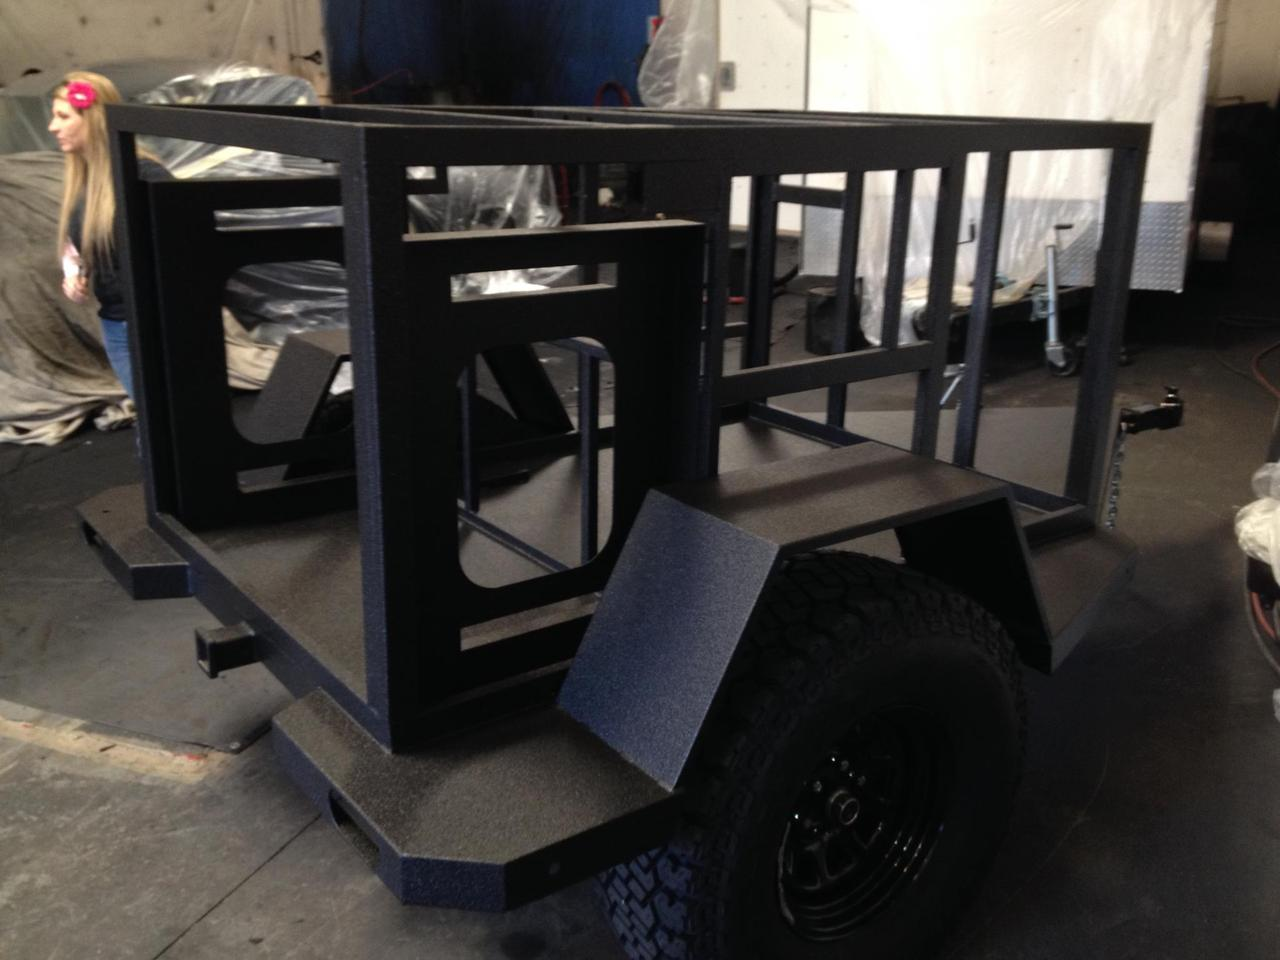 The Turtleback frame is coated to prevent against corrosion and wear